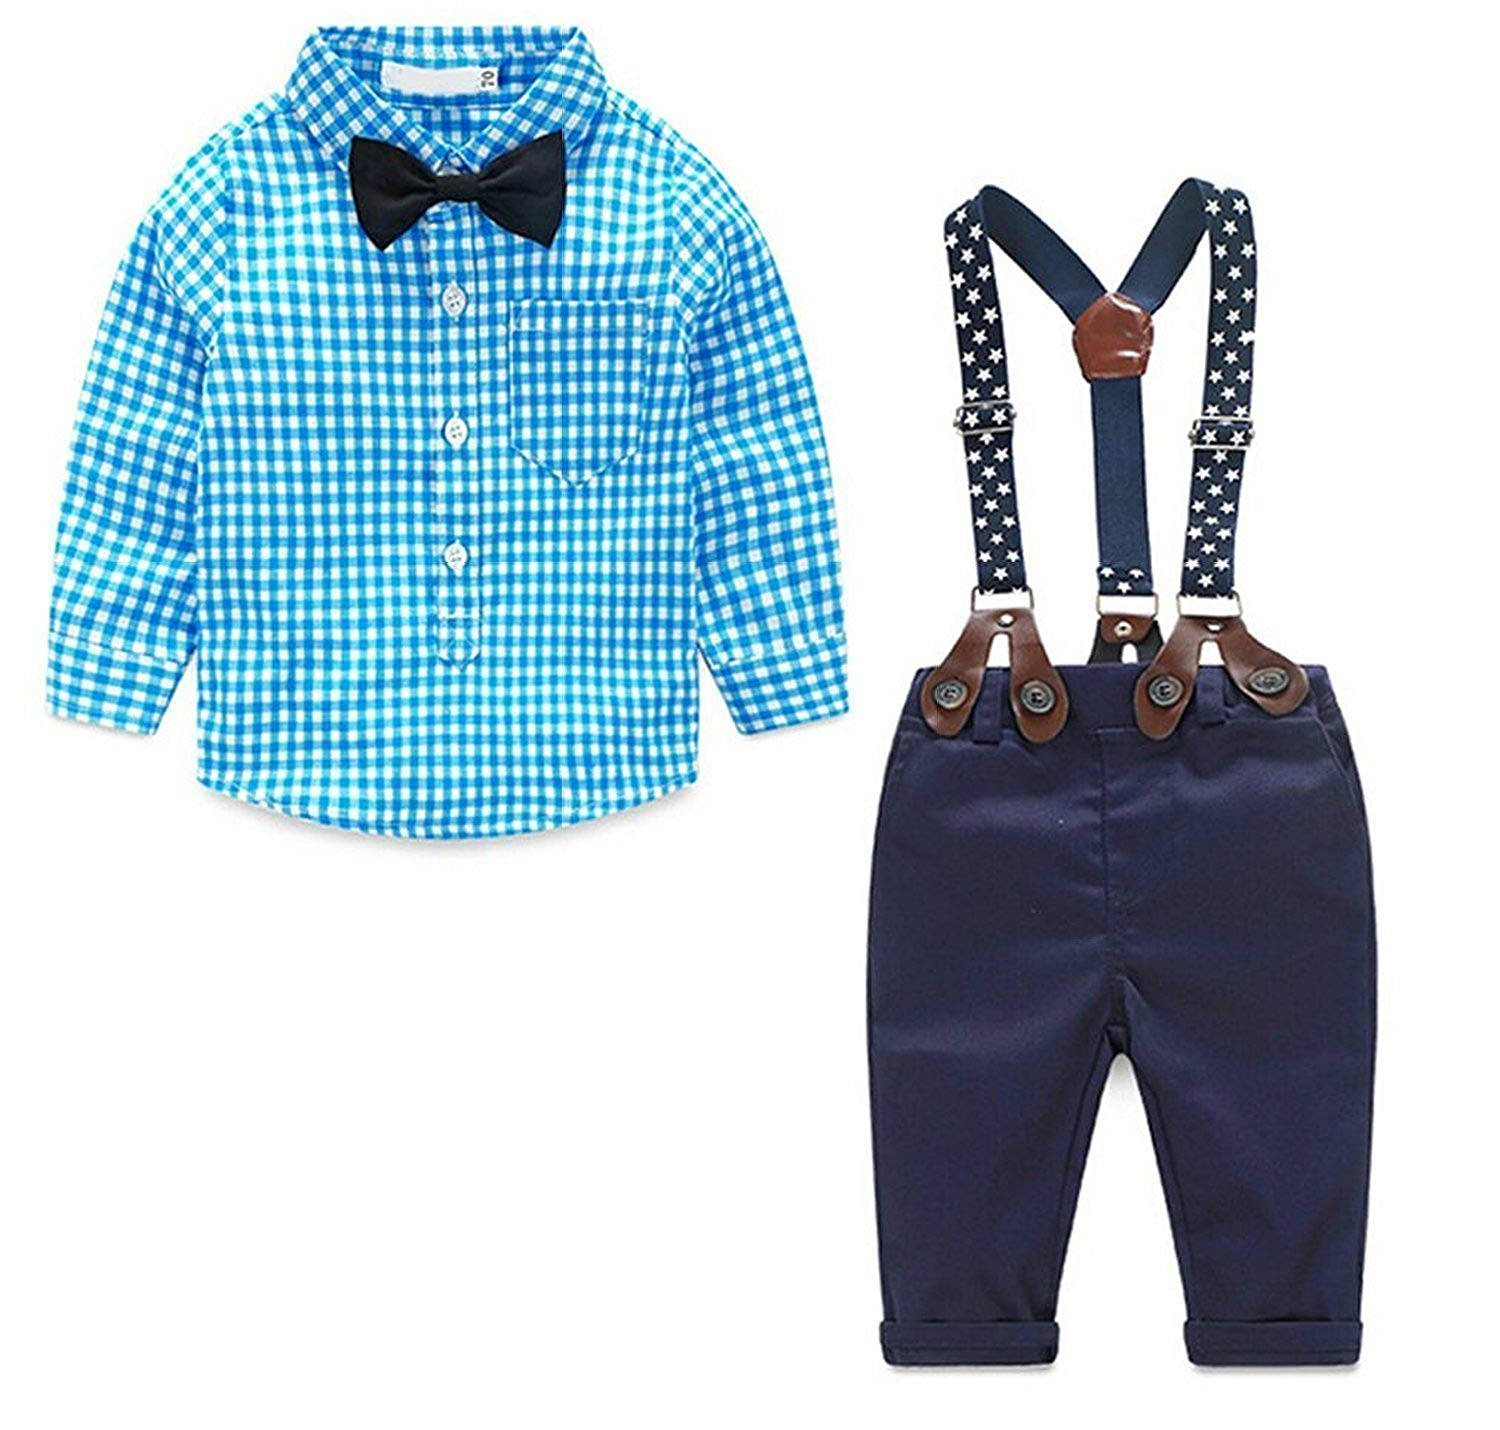 8467f906c350e Get Quotations · Baby Boys Gentleman Long Sleeve Plaid Shirt and Suspender Pants  Set